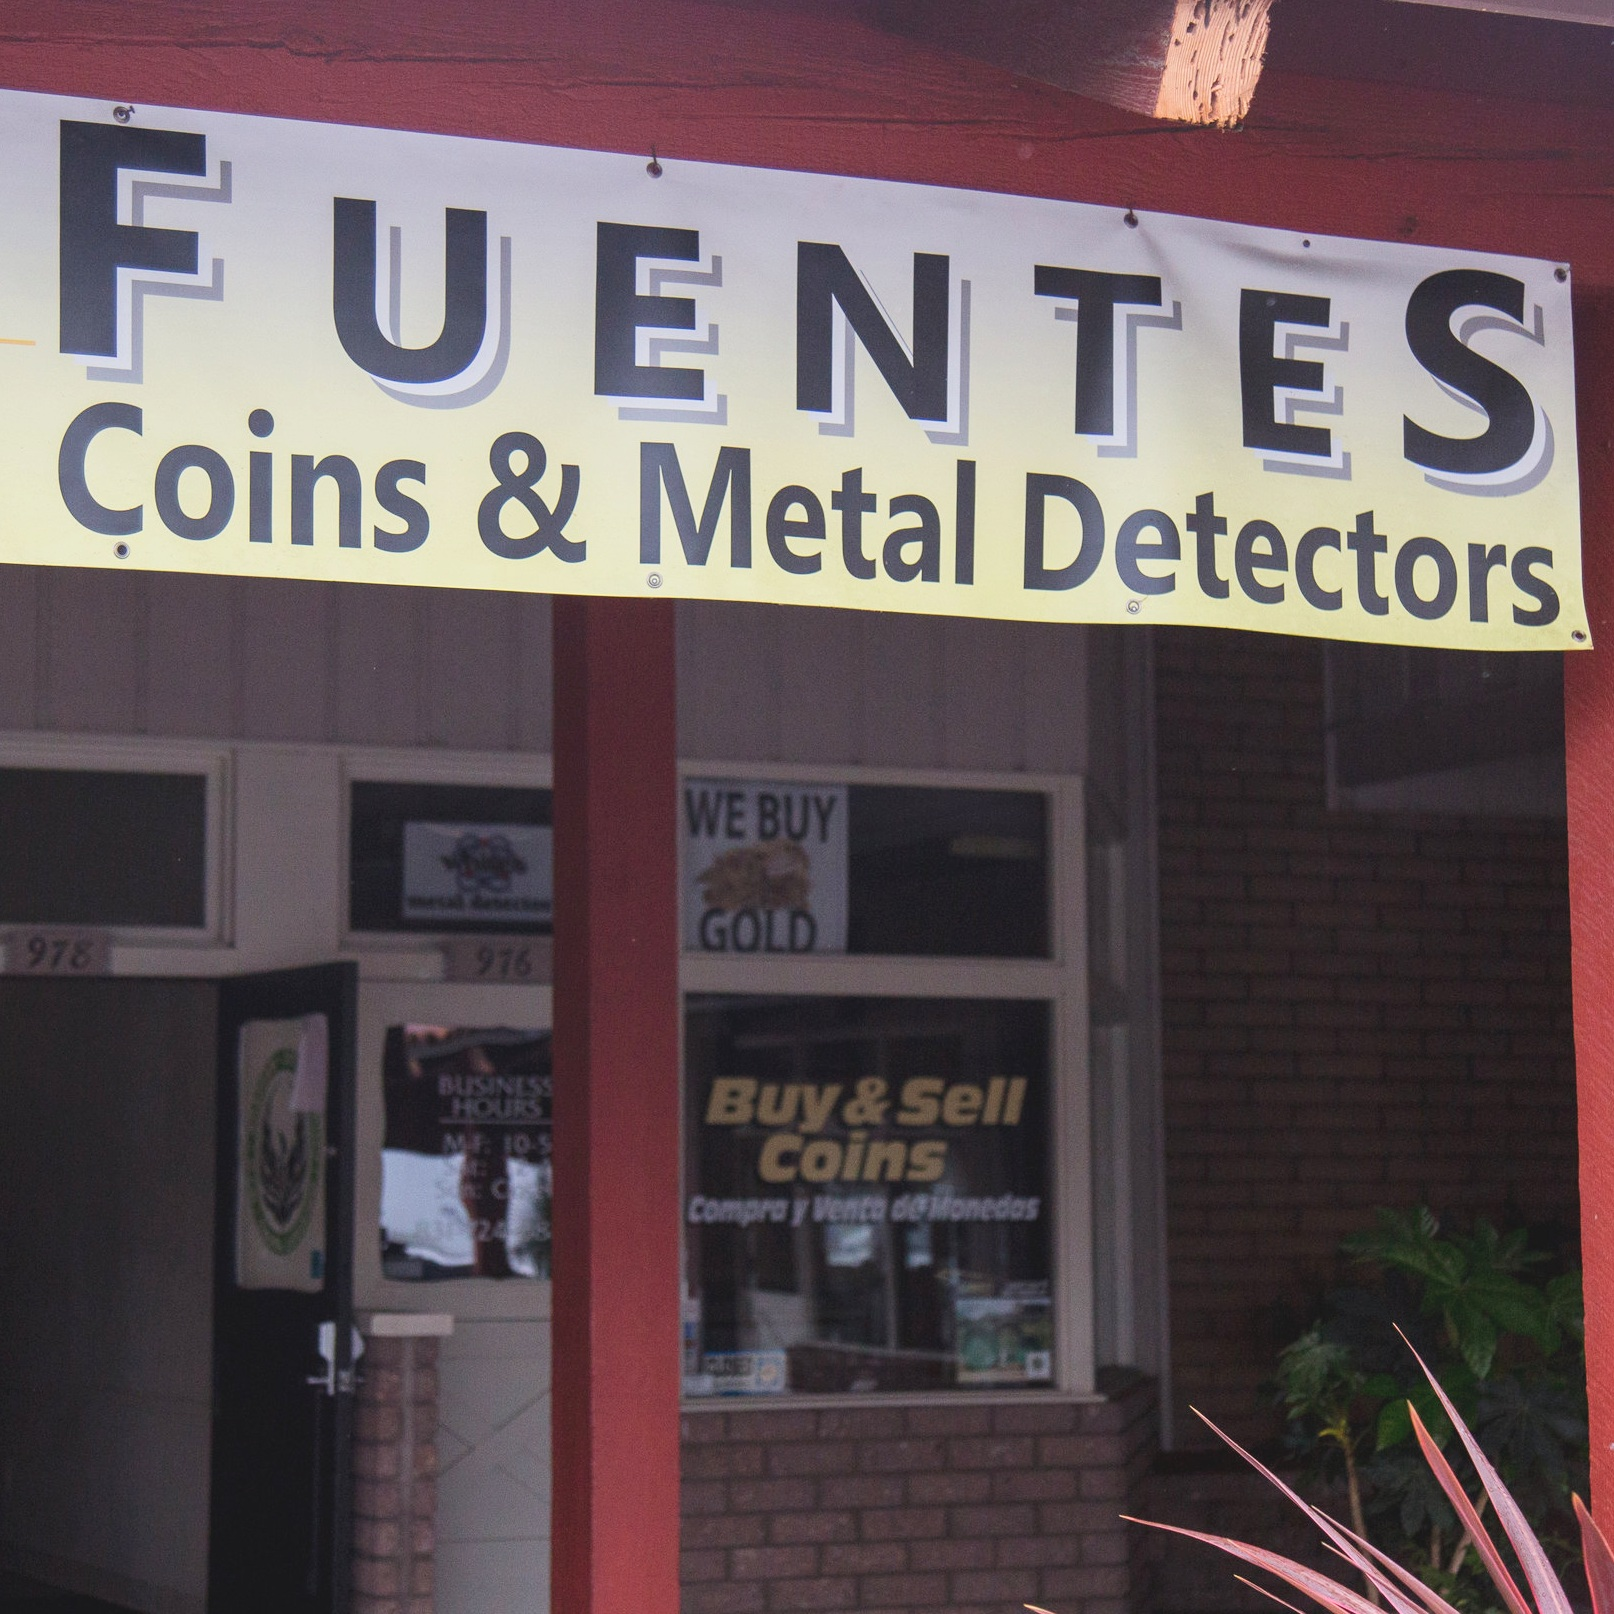 Fuentes Tosoros Coins   976 East Lake Ave. Watsonville, CA 95076  (831)724-0882